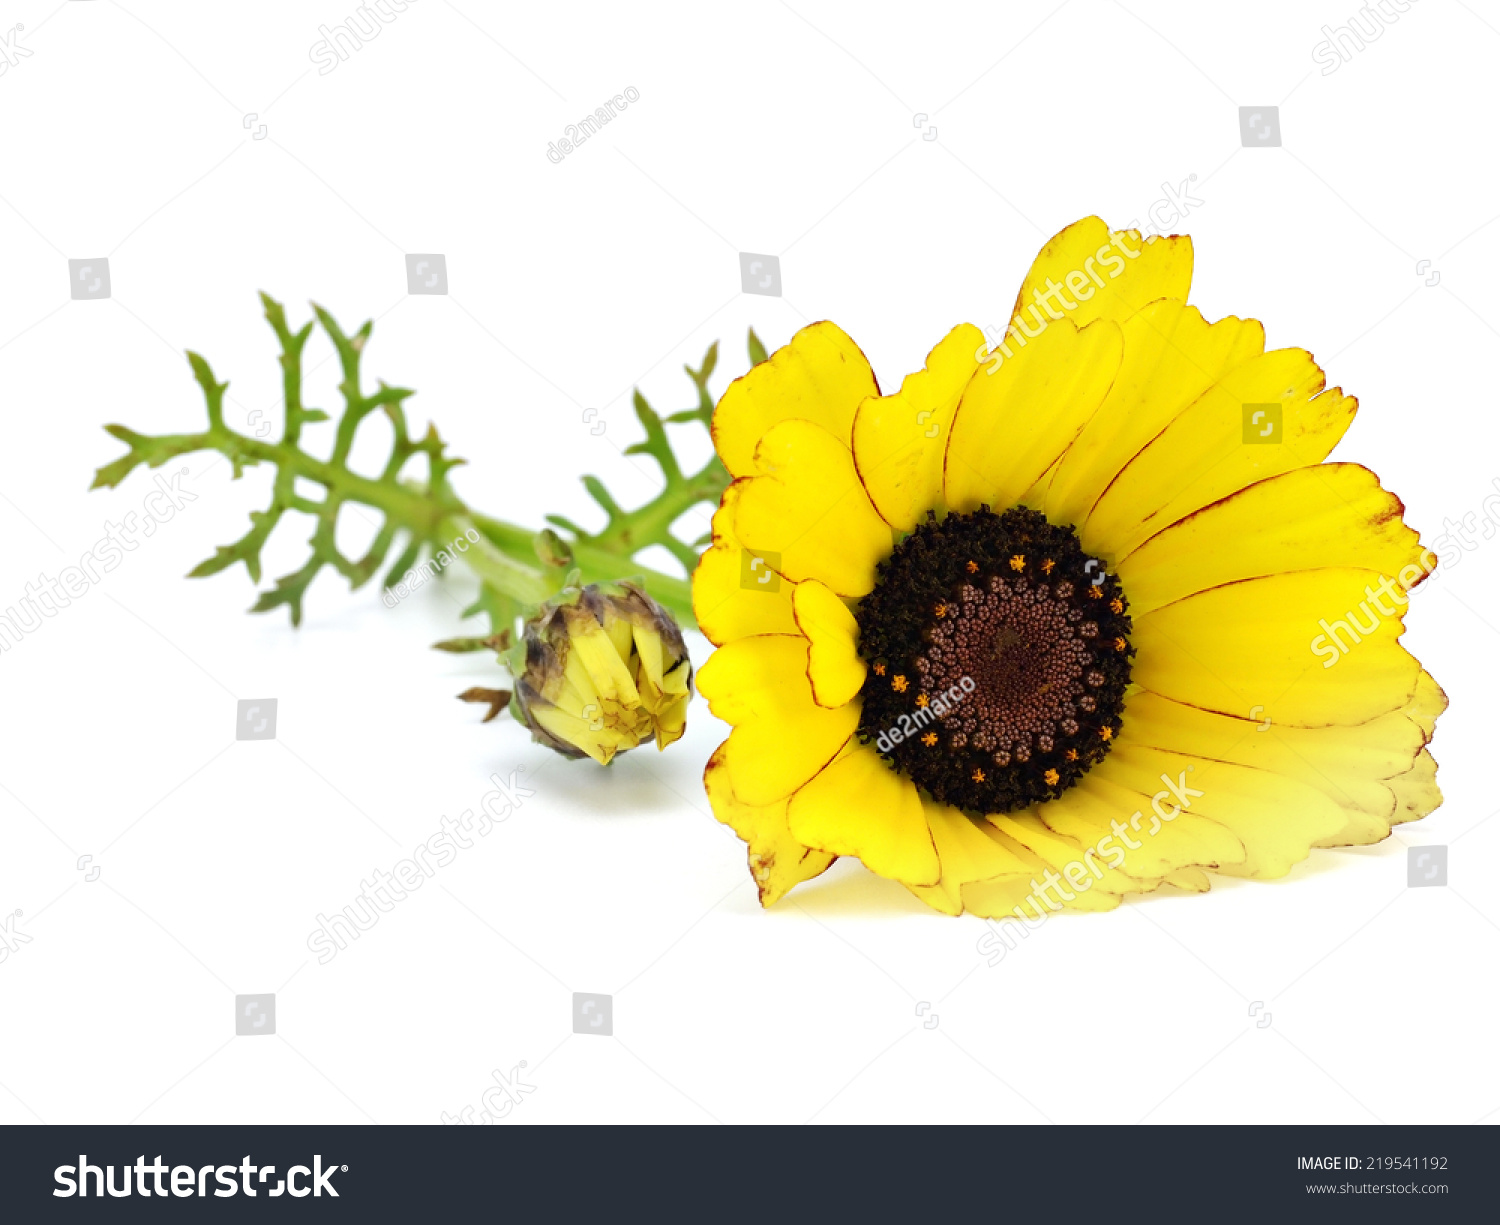 Yellow chrysanthemum flower on a white background       #219541192